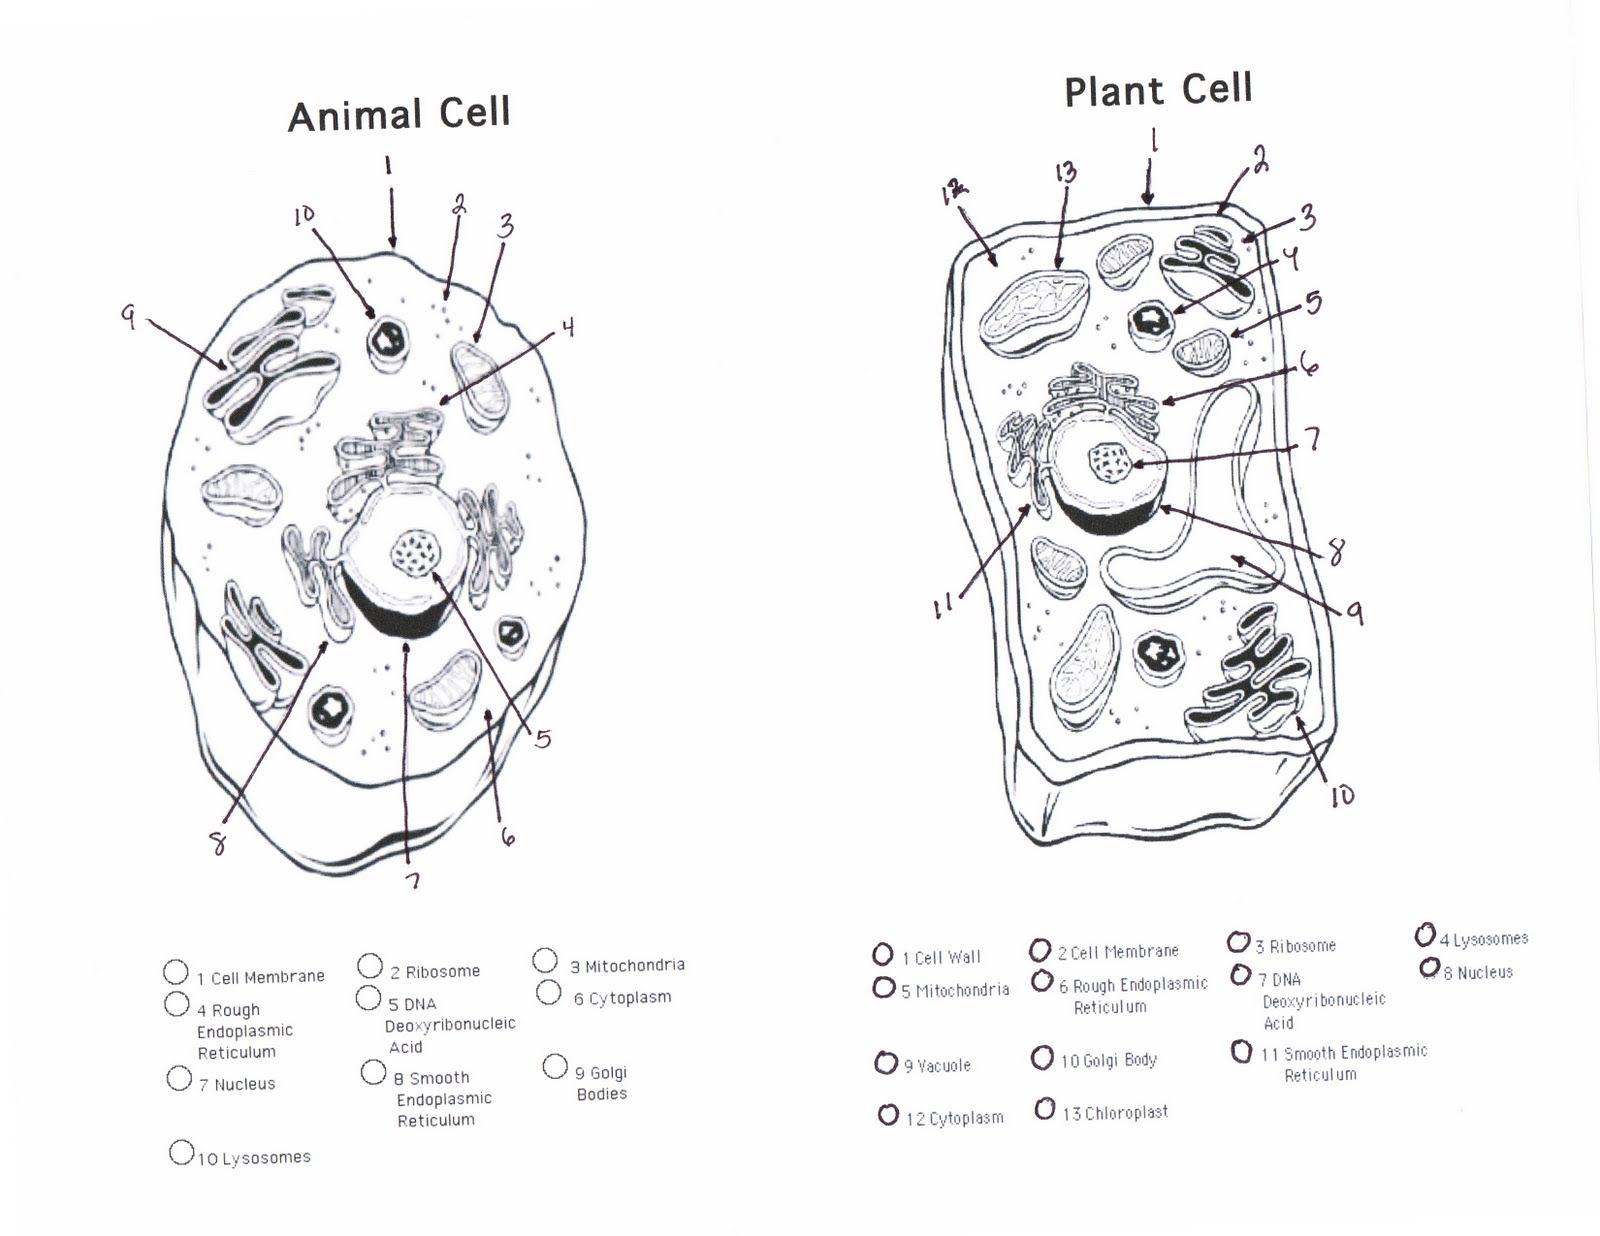 3d Animal Cell Diagram Blank Plant Cell